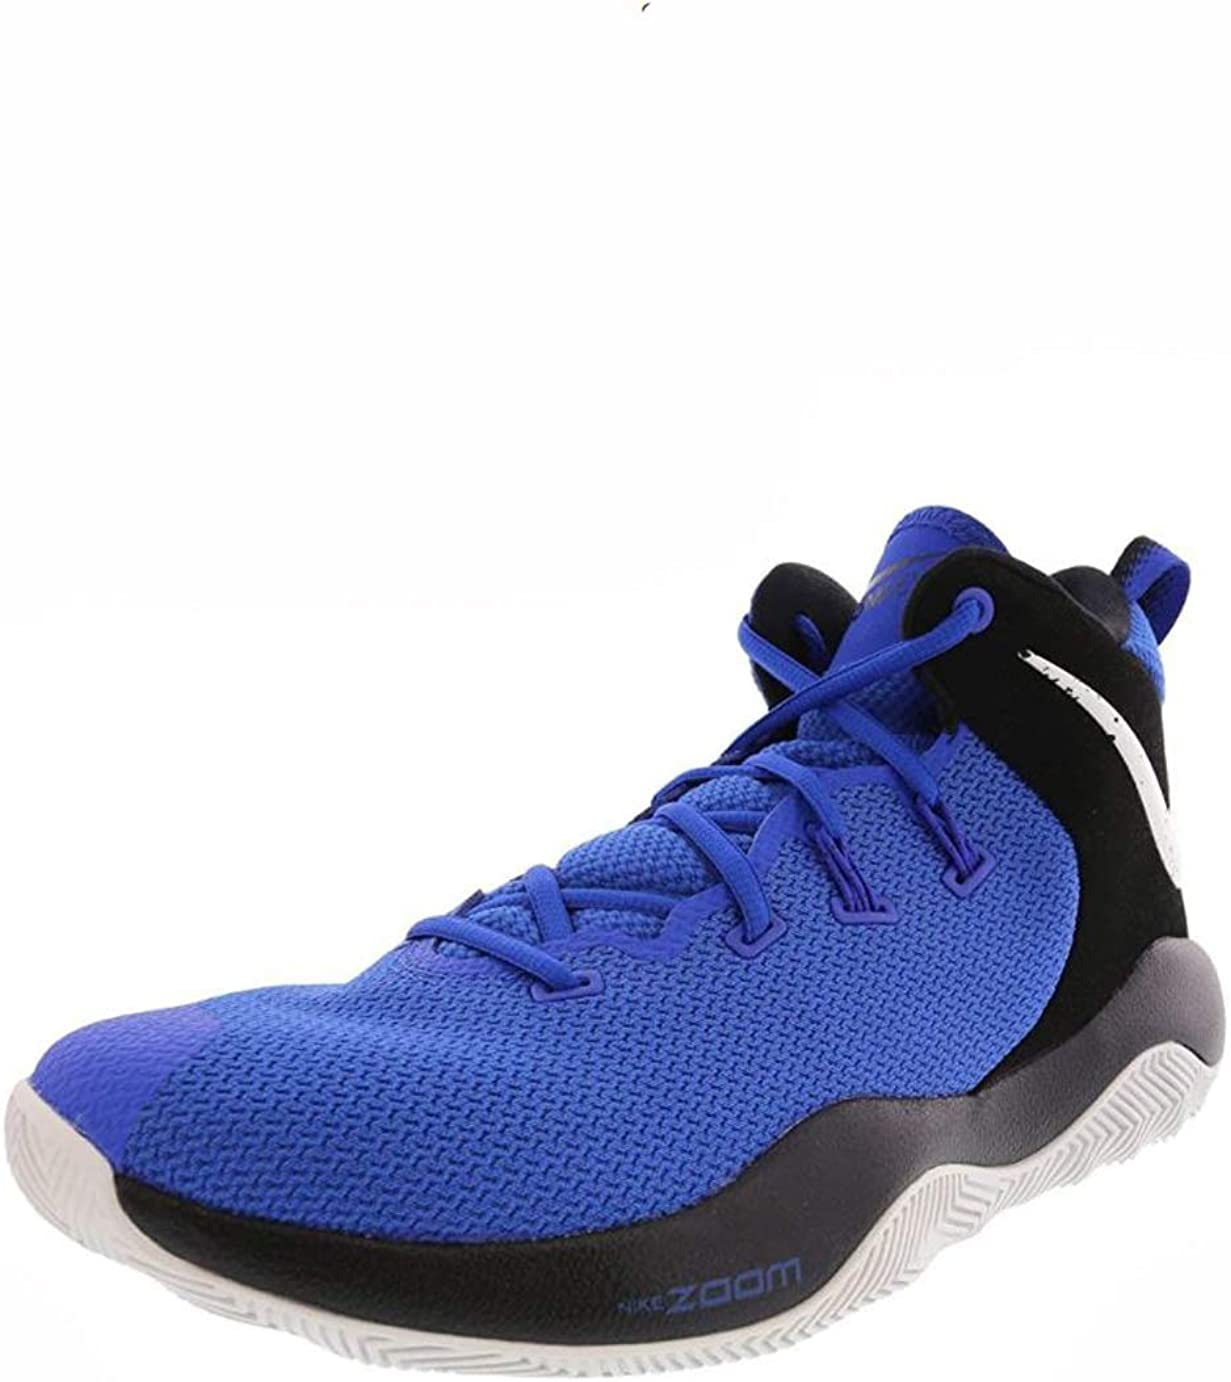 Nike Men's Zoom Cheap super special price Price reduction Rev II Basketball 400 Shoe nkAO5386